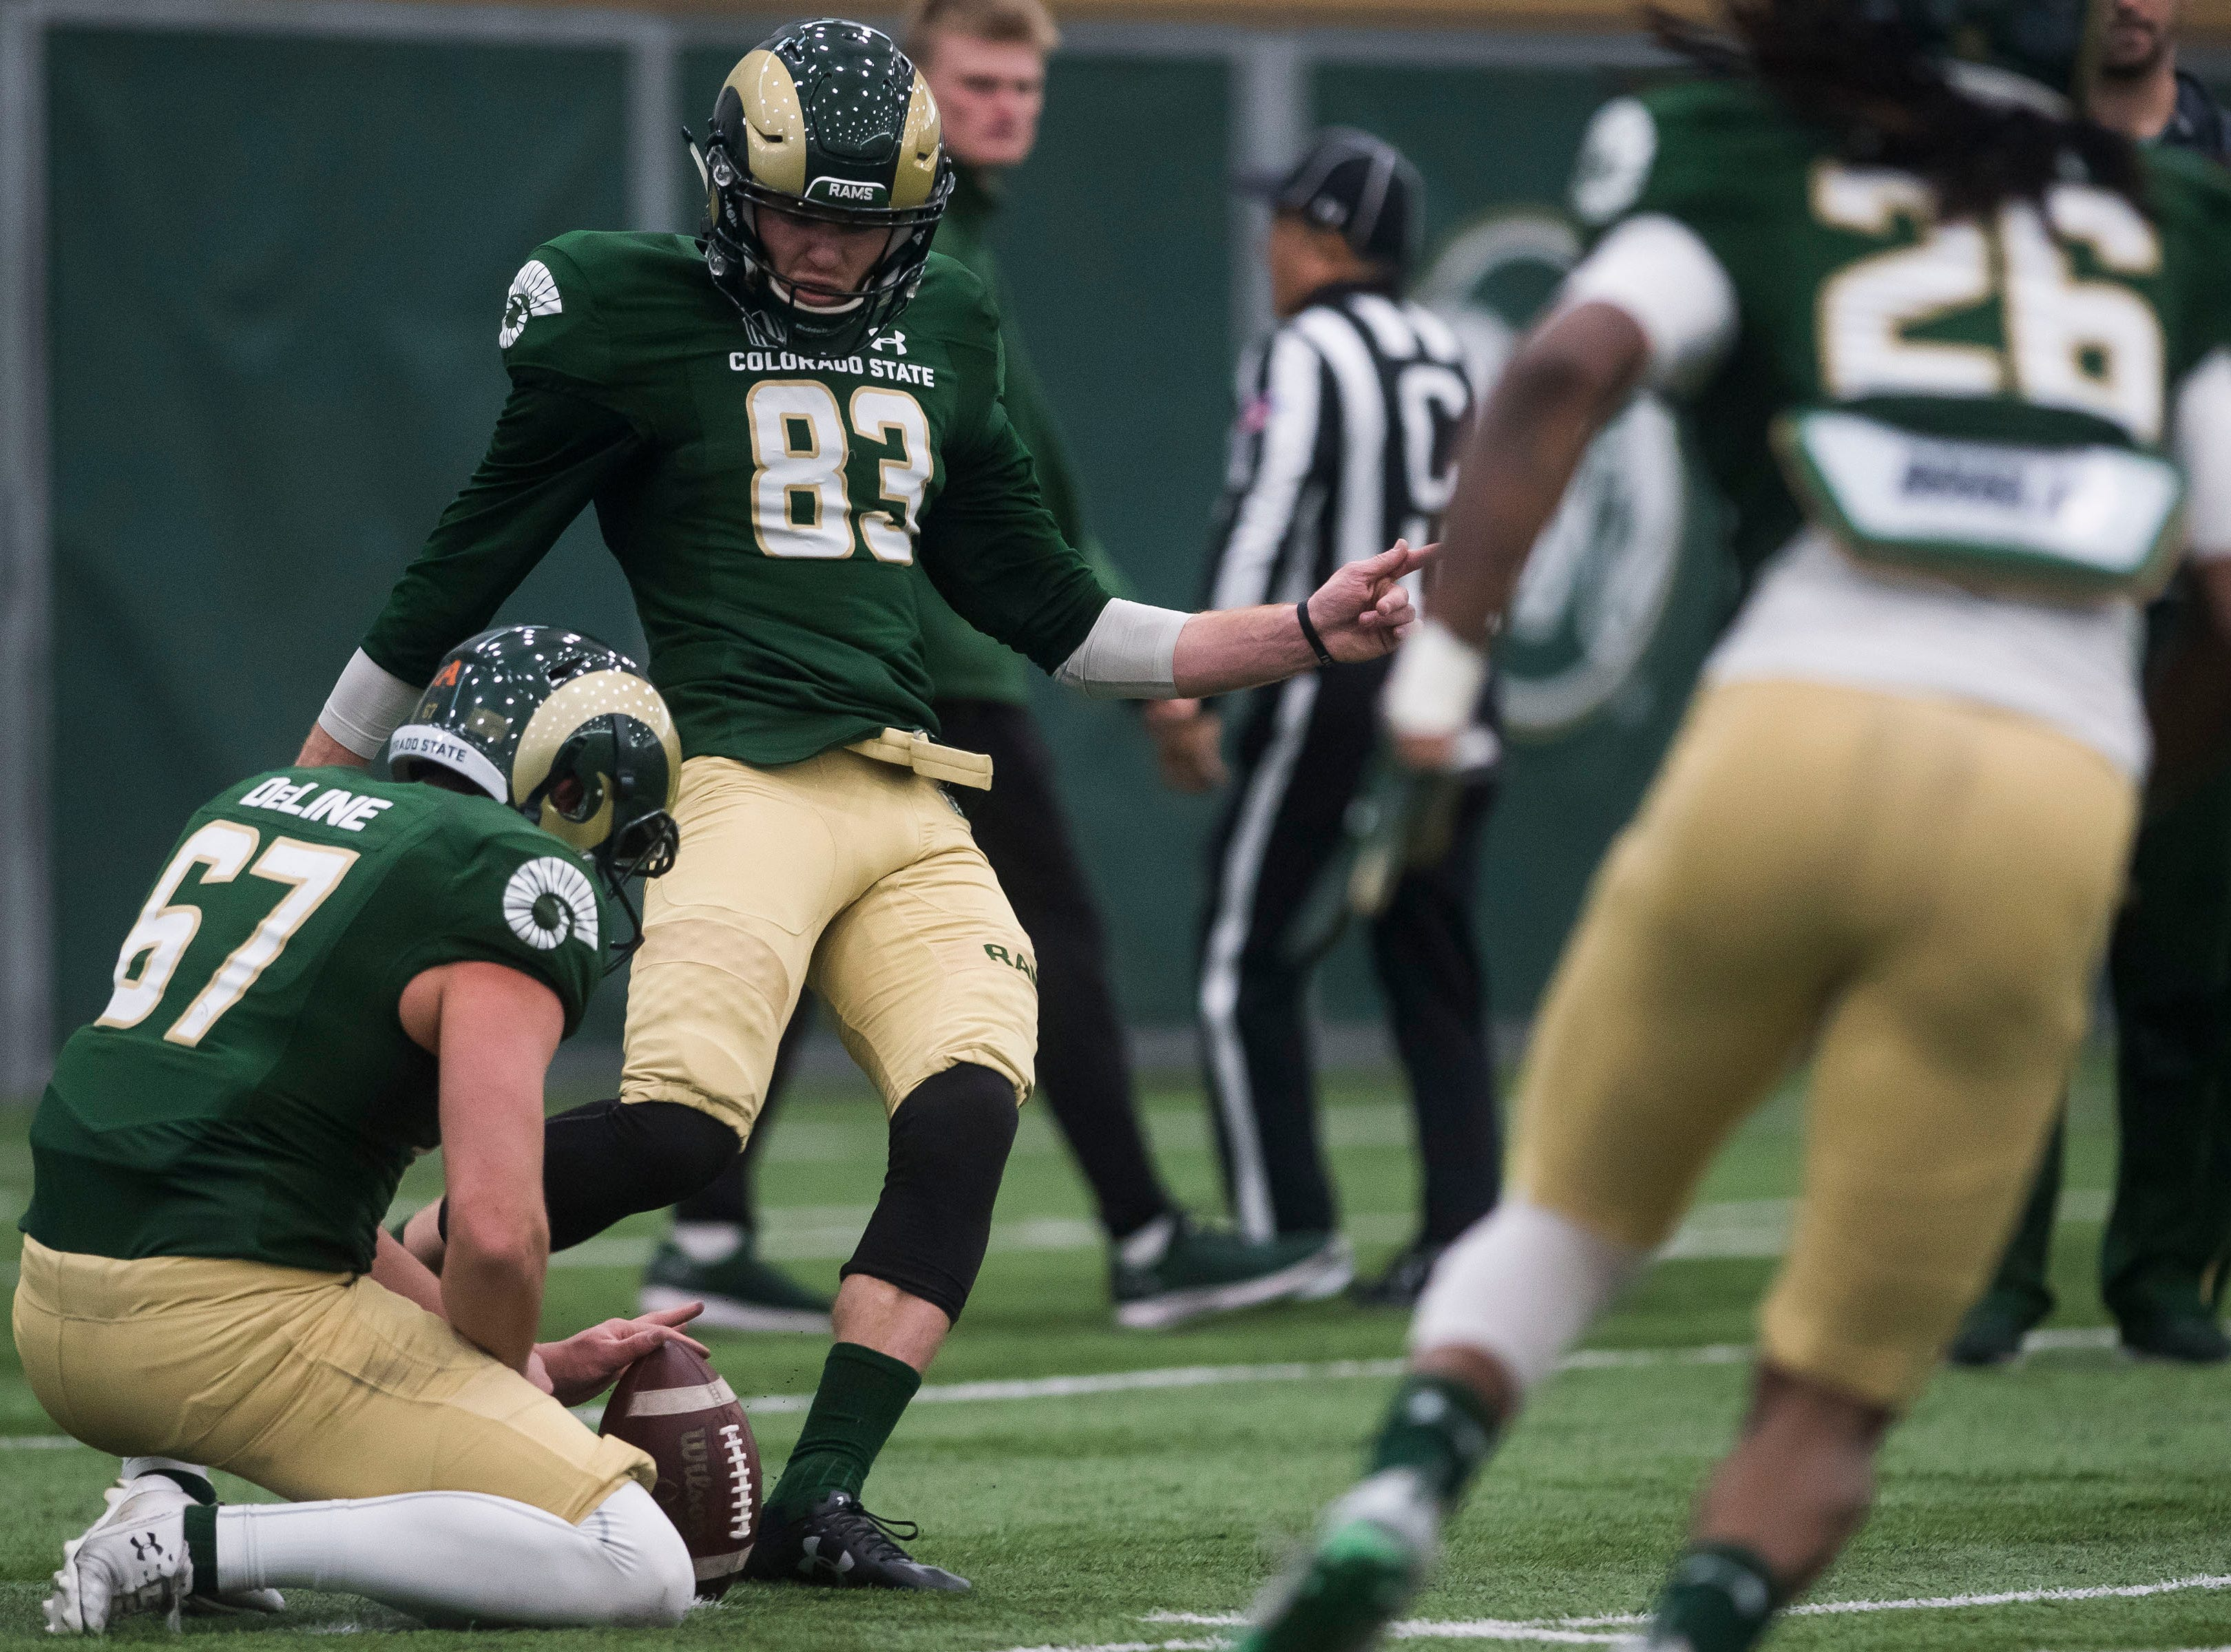 CSU senior kicker Braxton Davis (83) kicks a field goal during CSU's Spring game on Thursday, March 14, 2019, at their indoor practice facility in Fort Collins, Colo.